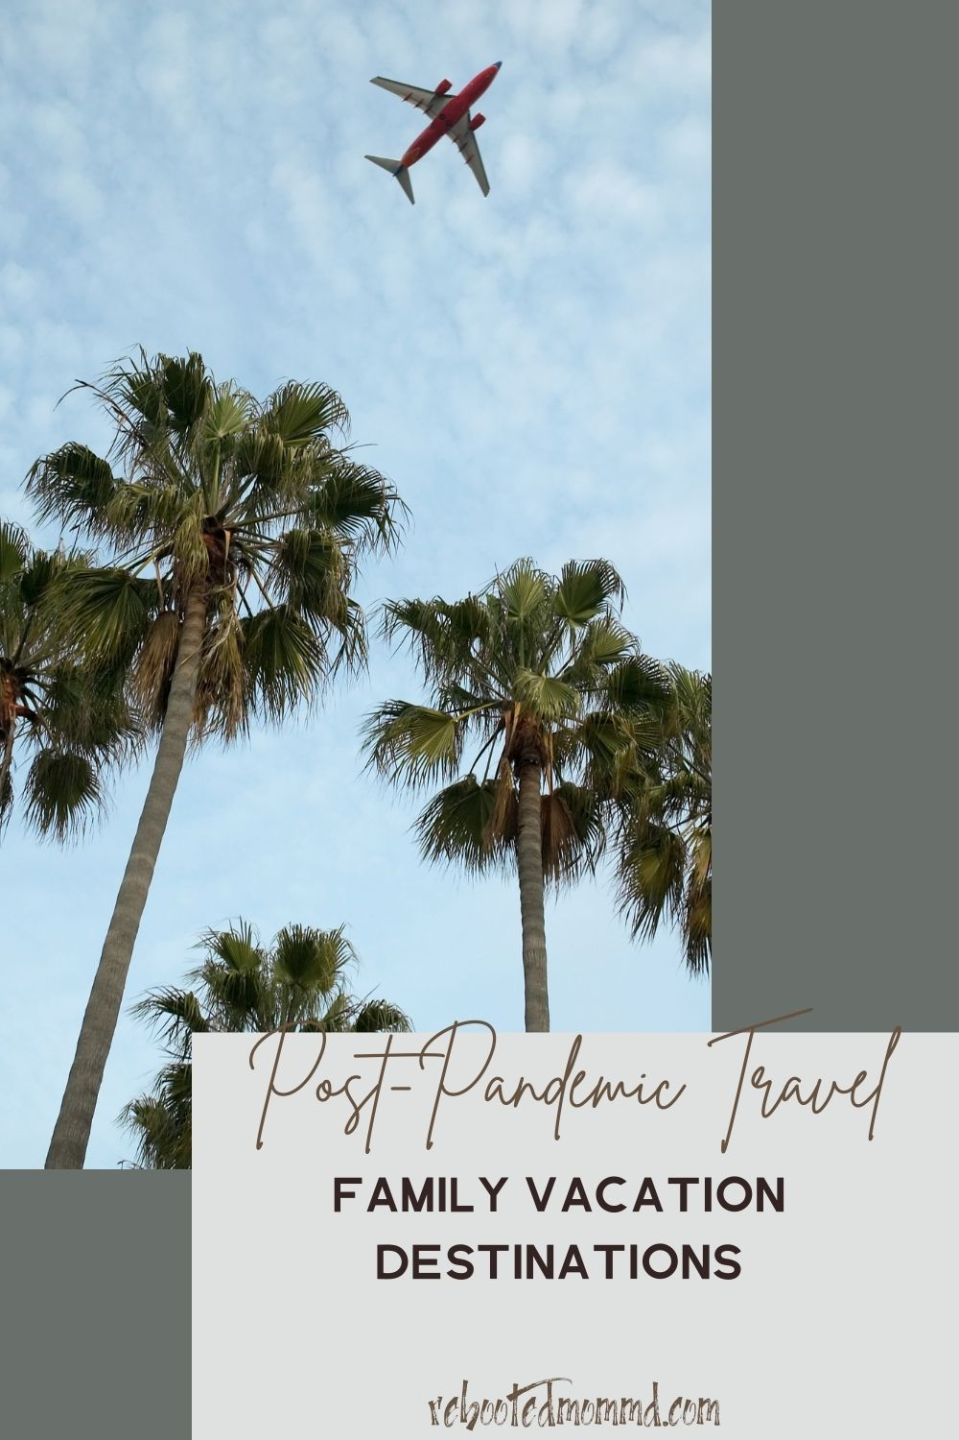 Family Vacation Destinations for Post-Pandemic Travel 2021